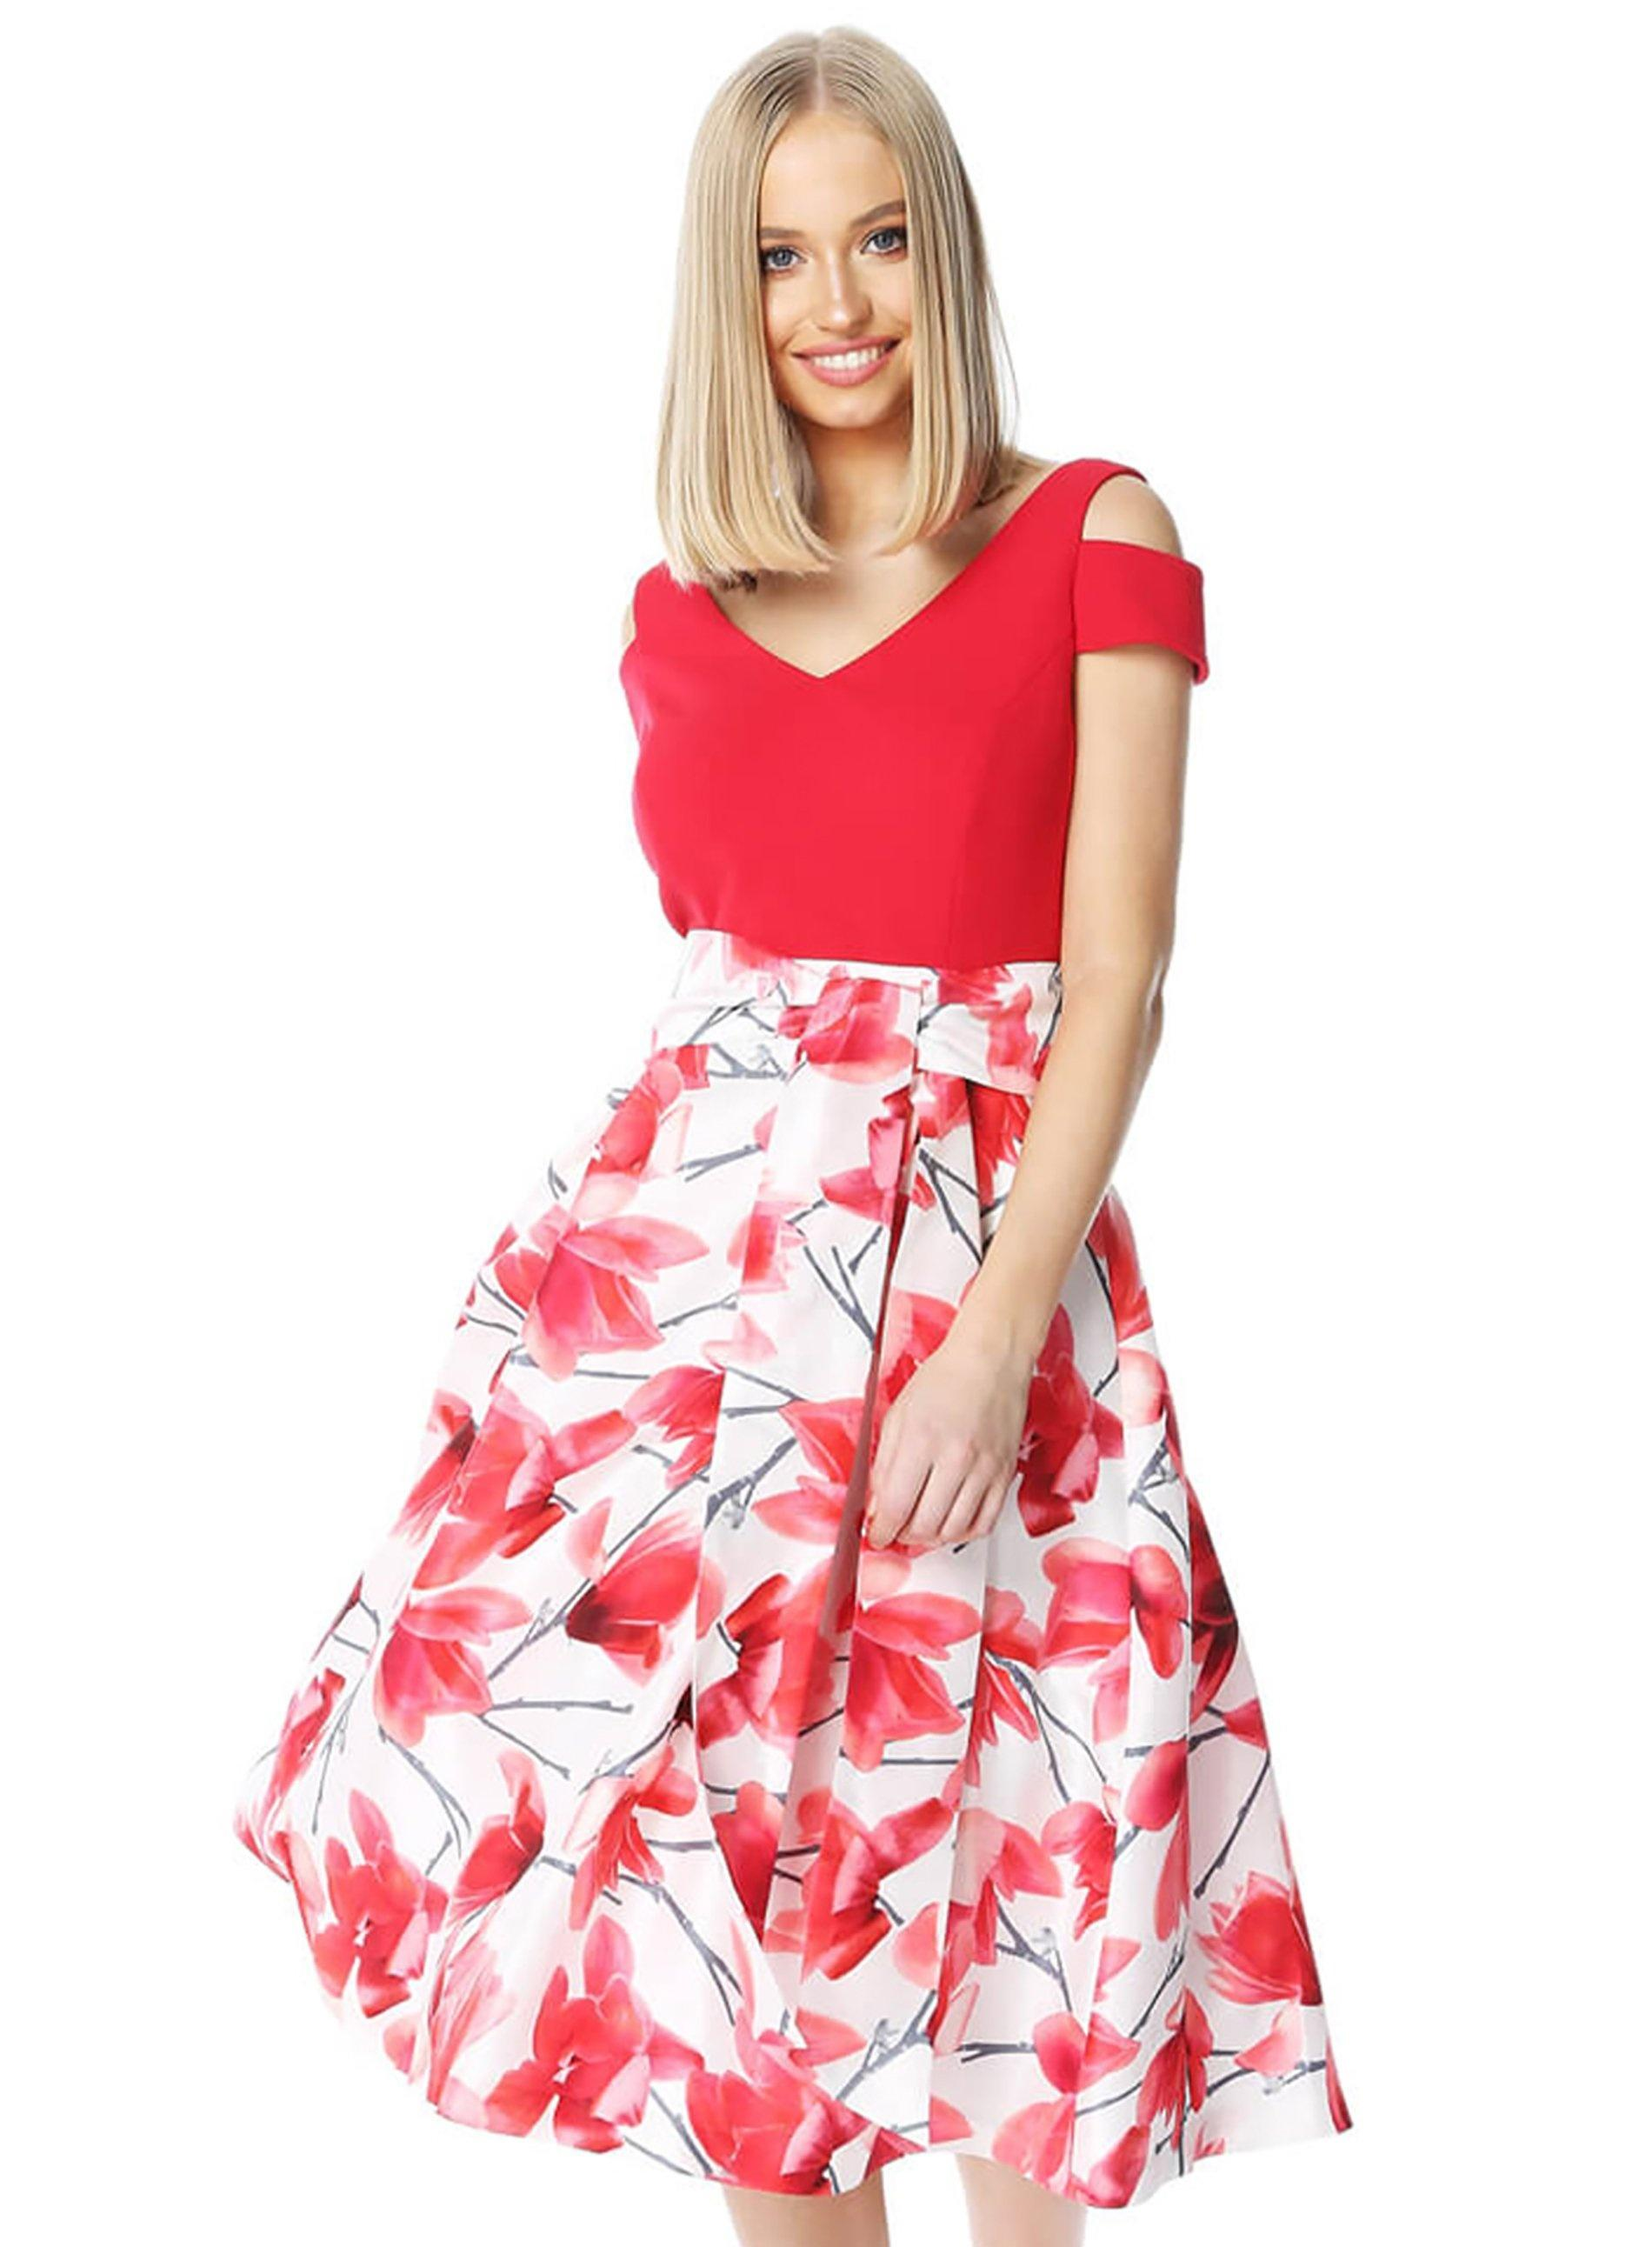 3afbbd41d407 ... Roman Originals Red Floral Print Fit And Flare Dress - Lyst. View  fullscreen